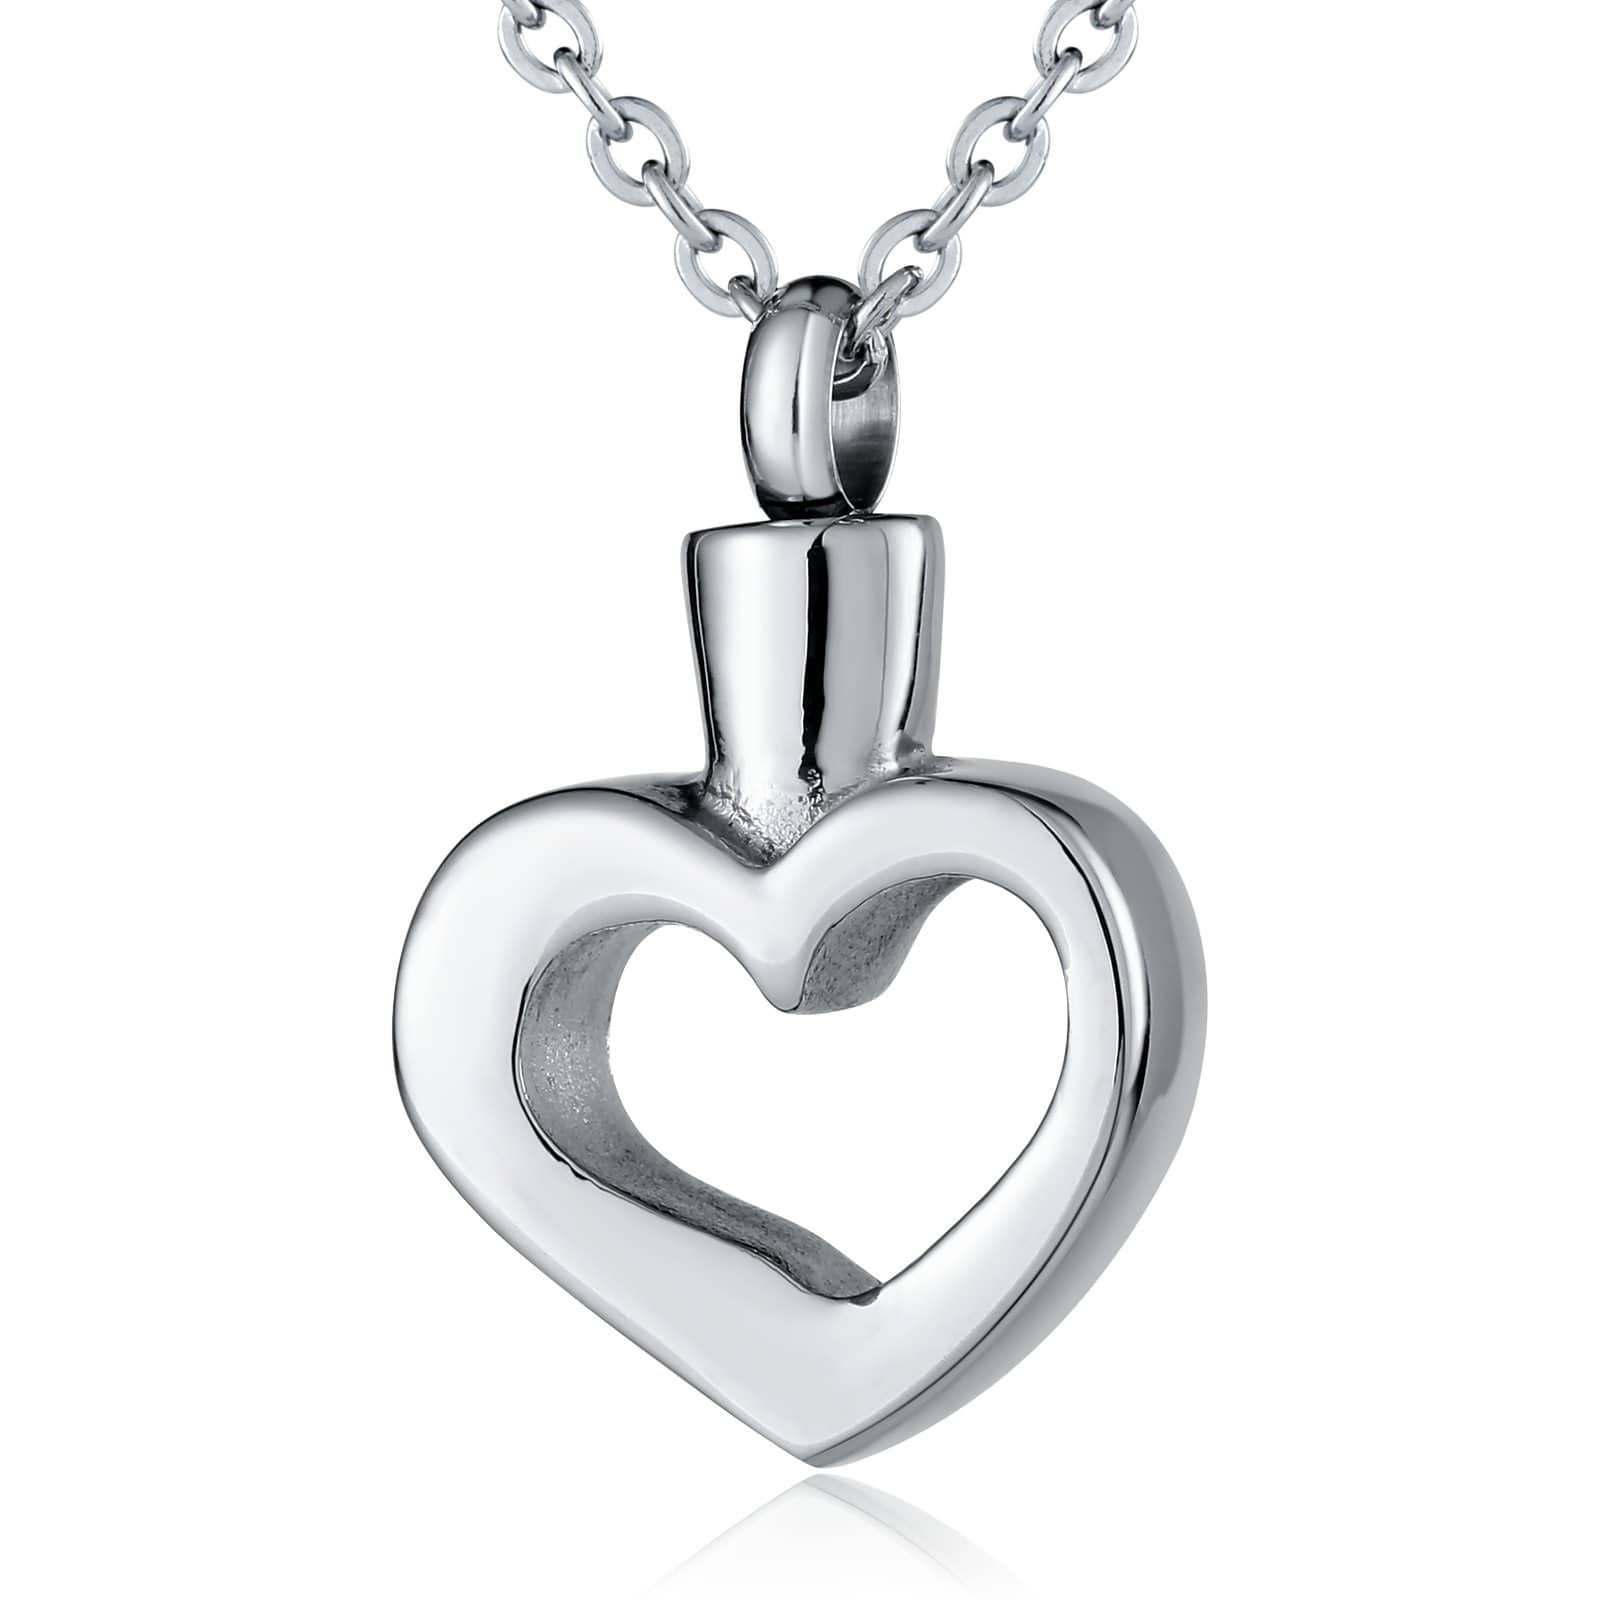 Ashes Pendant for Women Urn Necklace Stainless Steel Hollow Heart Polish